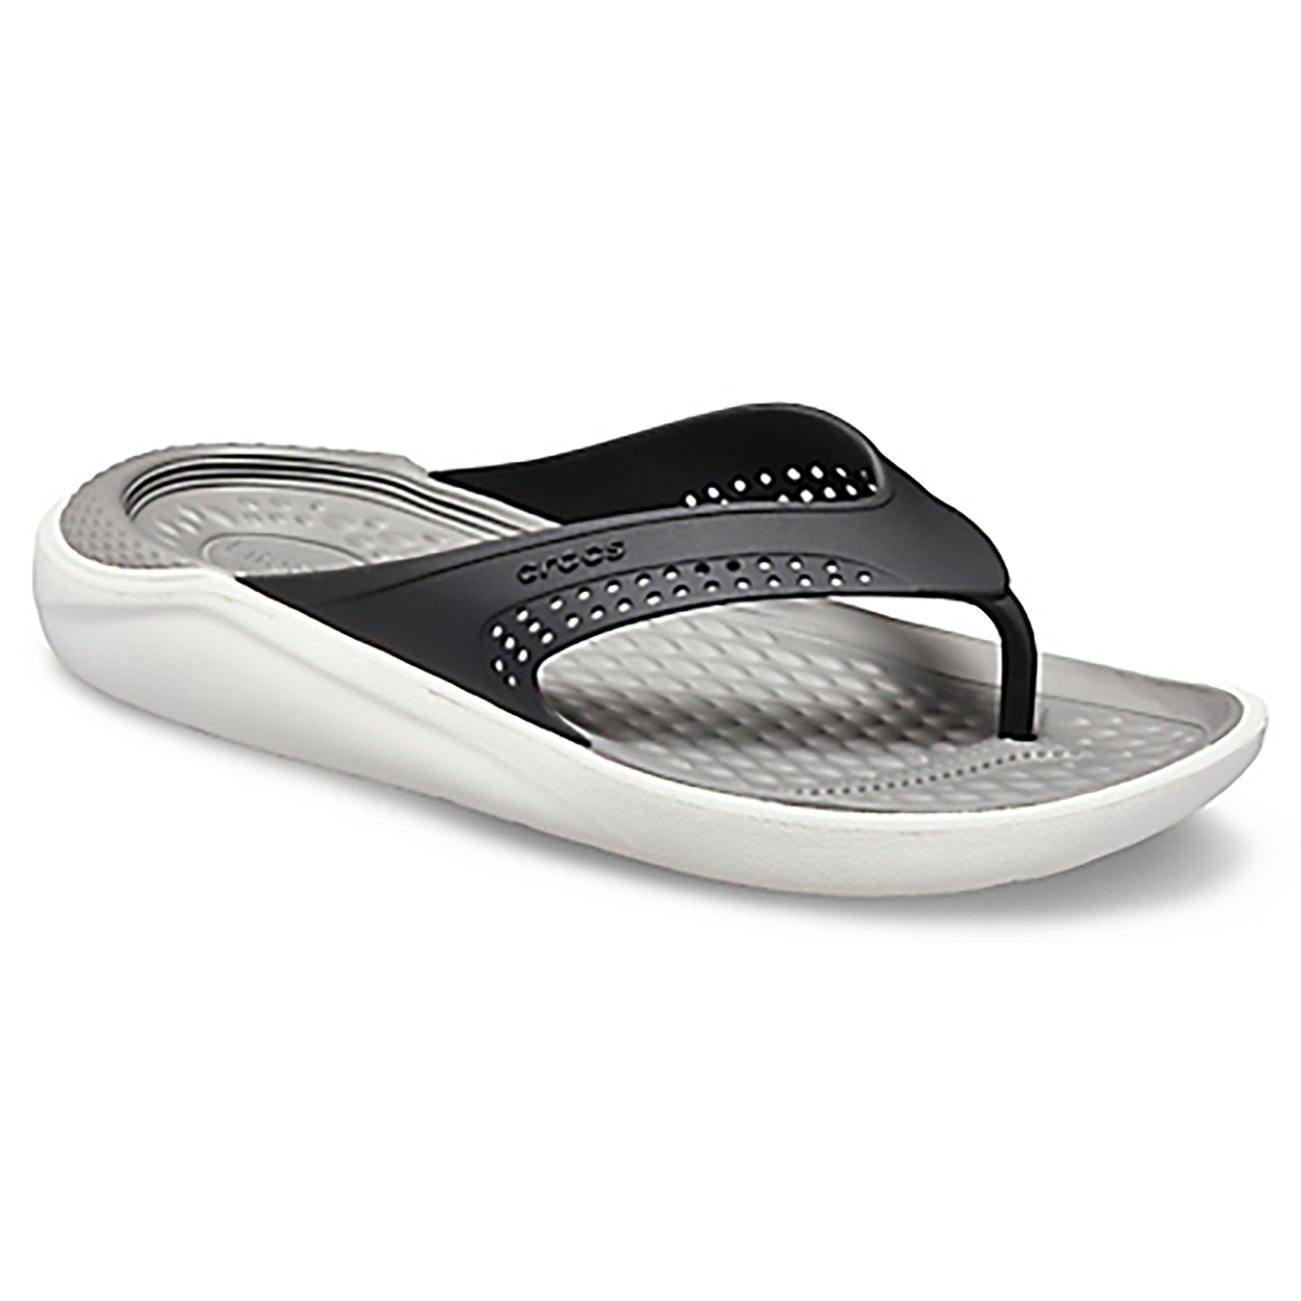 Unisex Adults Crocs LiteRide Flip